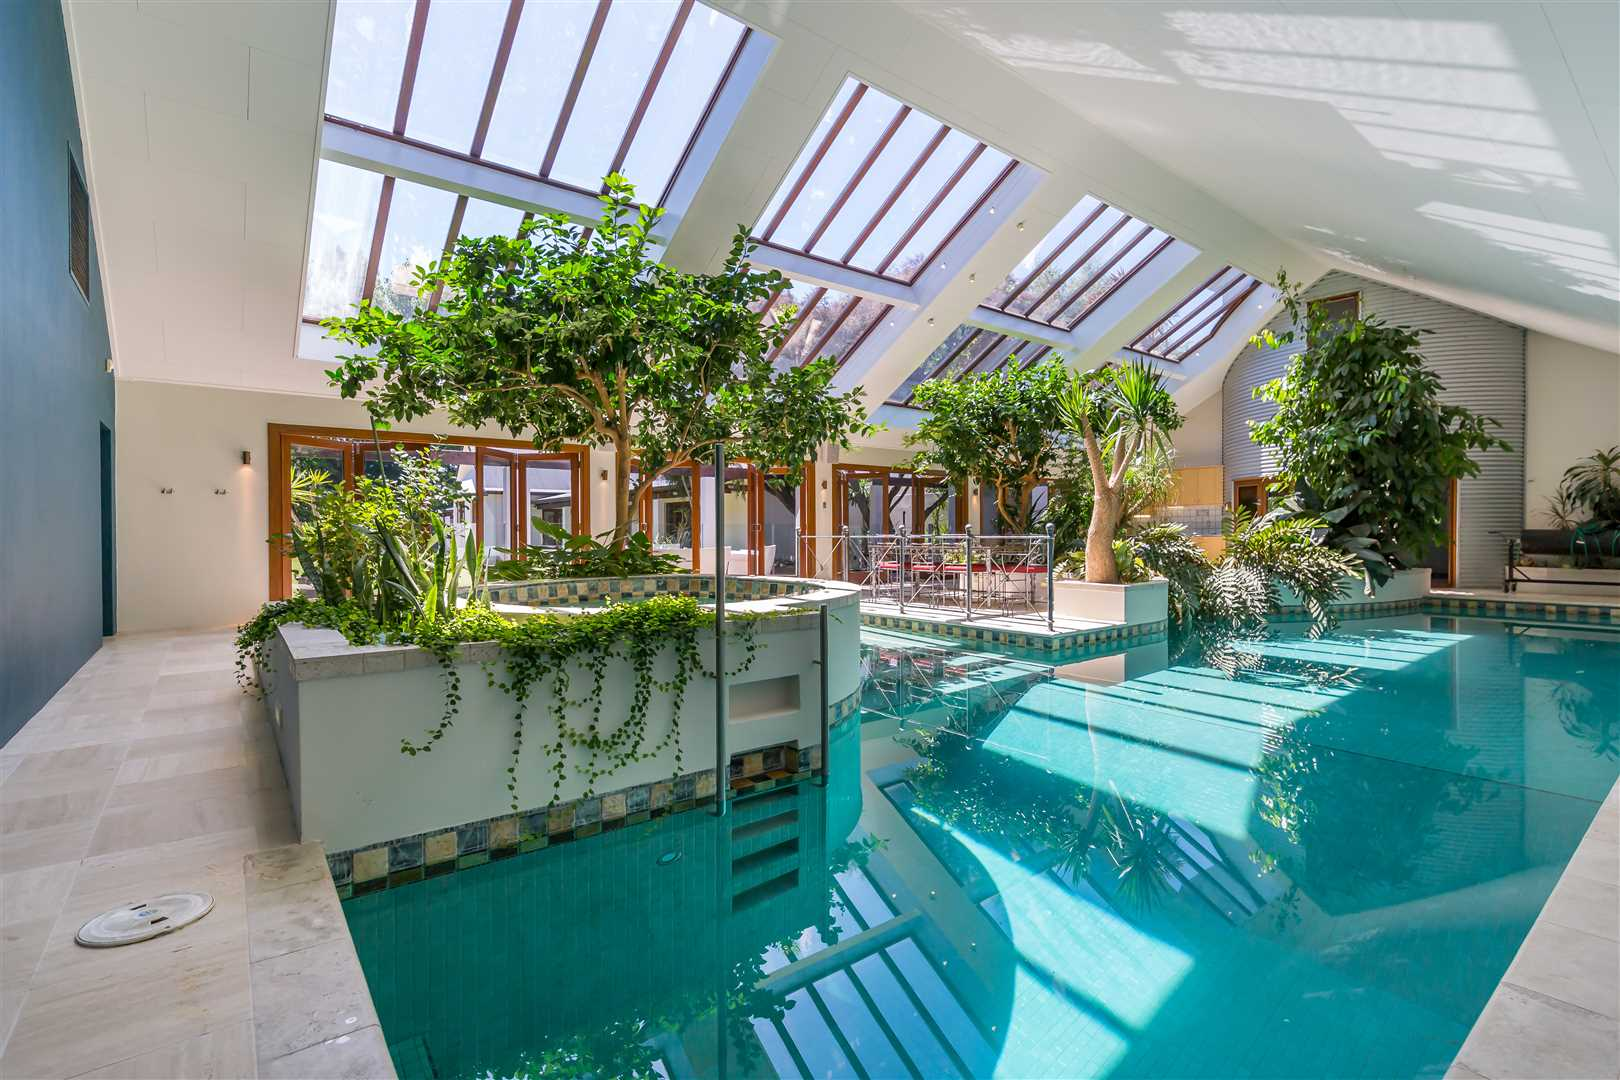 An indoor pool complex or resort quality